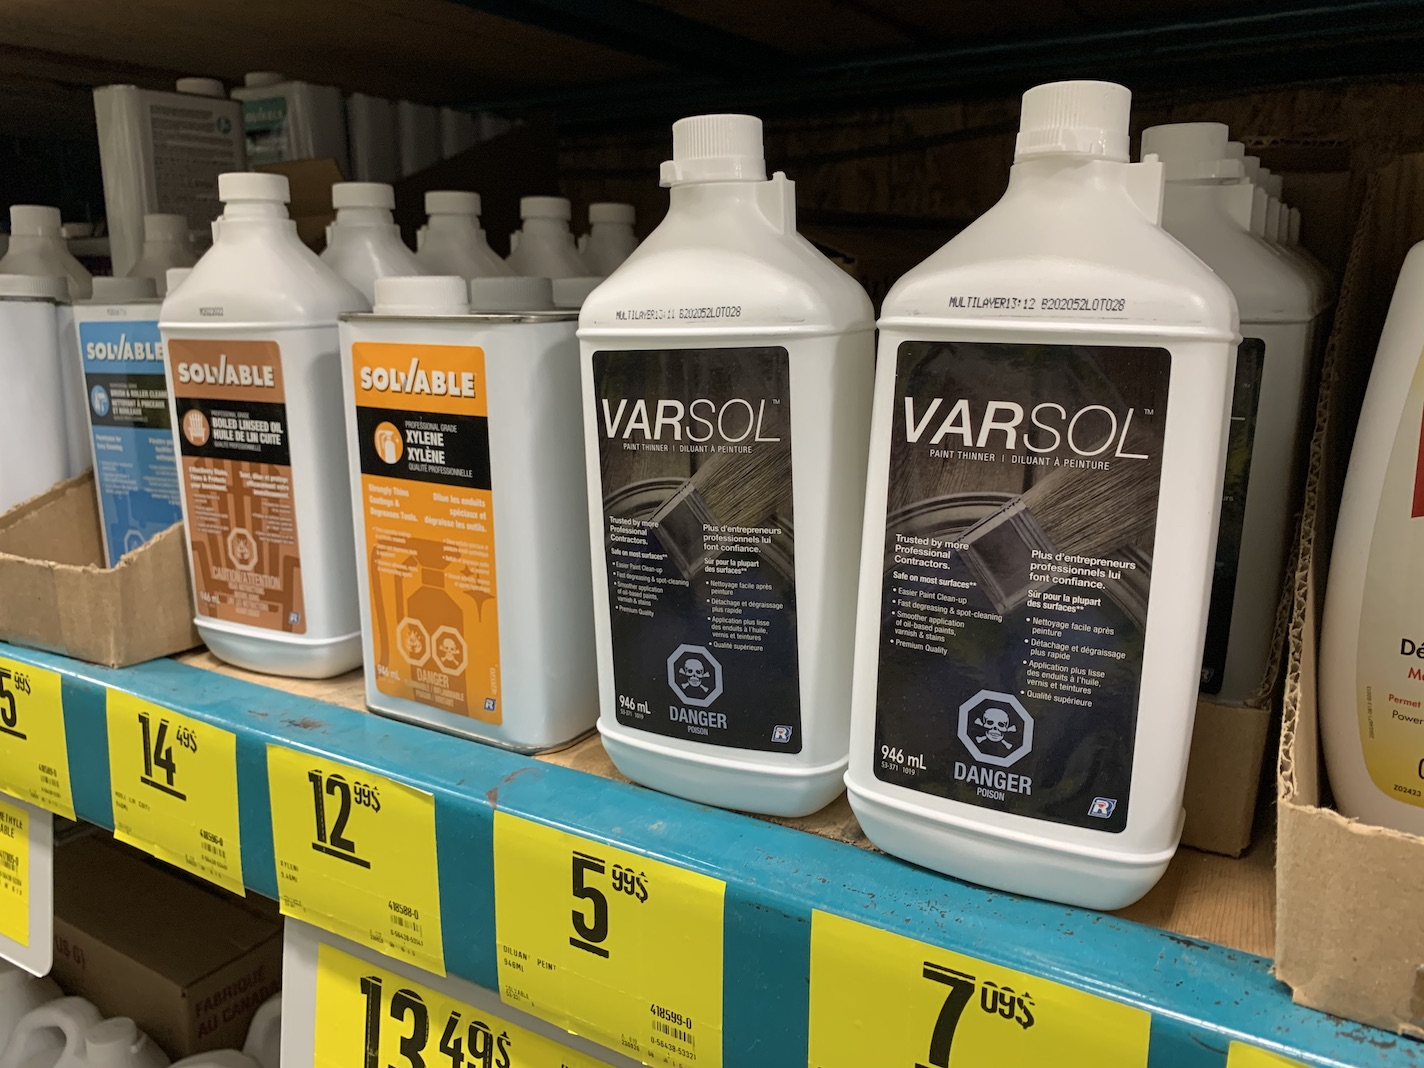 Diluant à peinture Varsol Recochem – action collective nationale